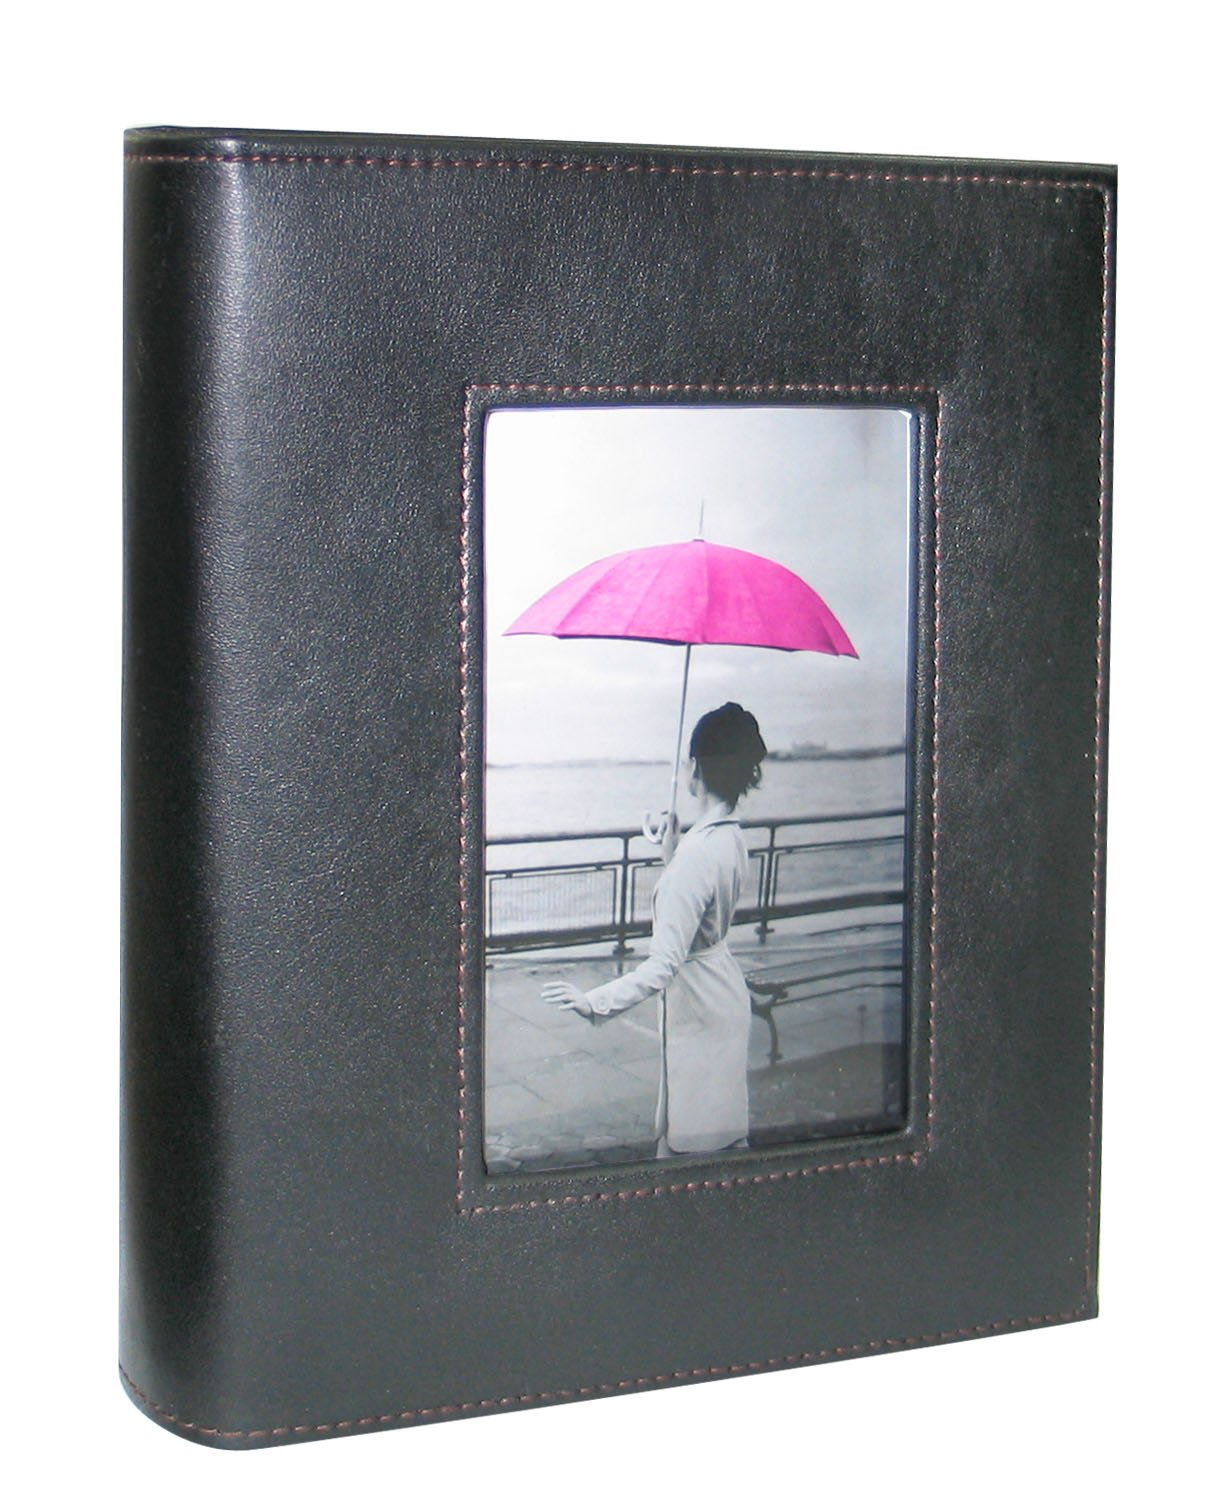 Kleer Vu Photo Album, Leatherette Hand Crafted Collection, Holds 200 4x6 Photos 2 Per Page, with Large Frame Front Window on Cover Color: Black Kleer-Vu Deluxe Albums Inc. ELEKTR-DE-8139918